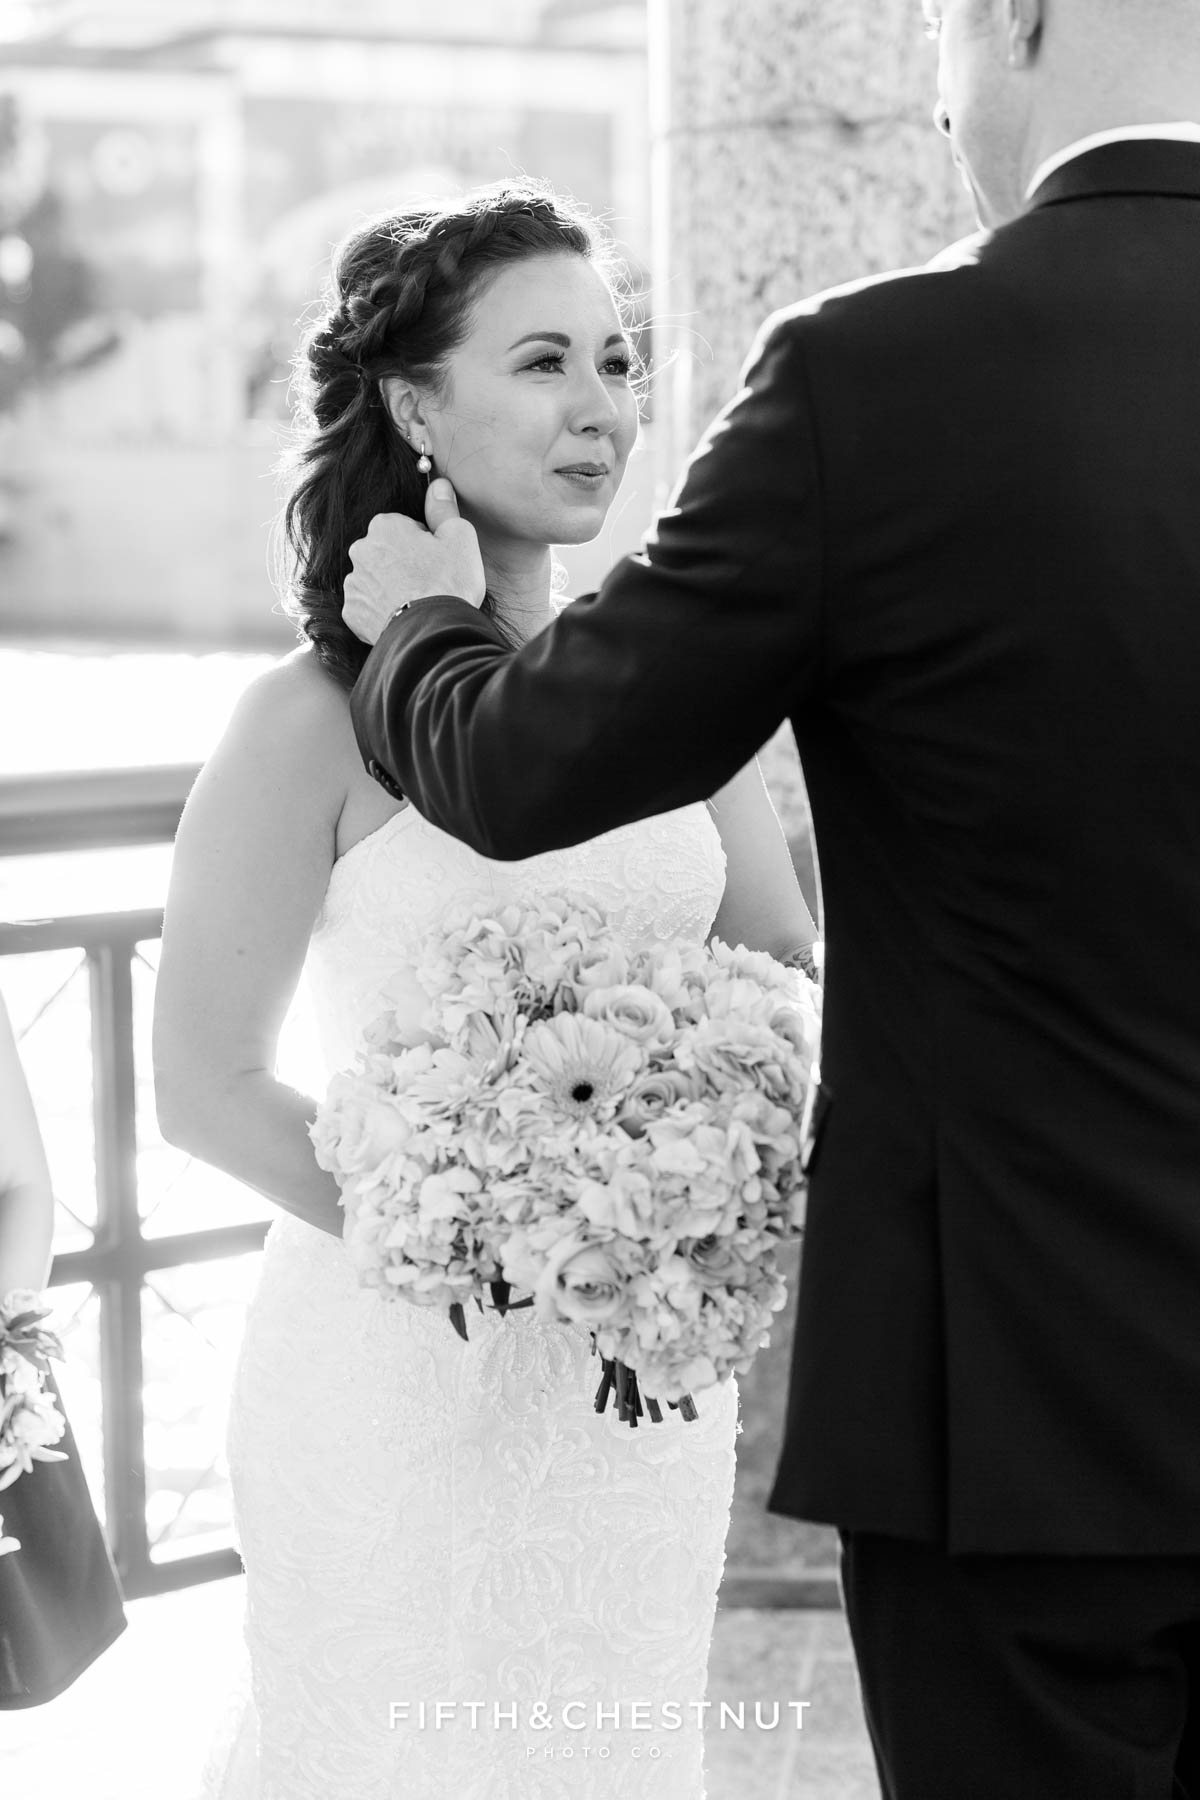 Groom wipes tears from Bride's eyes as she cries during her Downtown Reno Elopement ceremony on the river